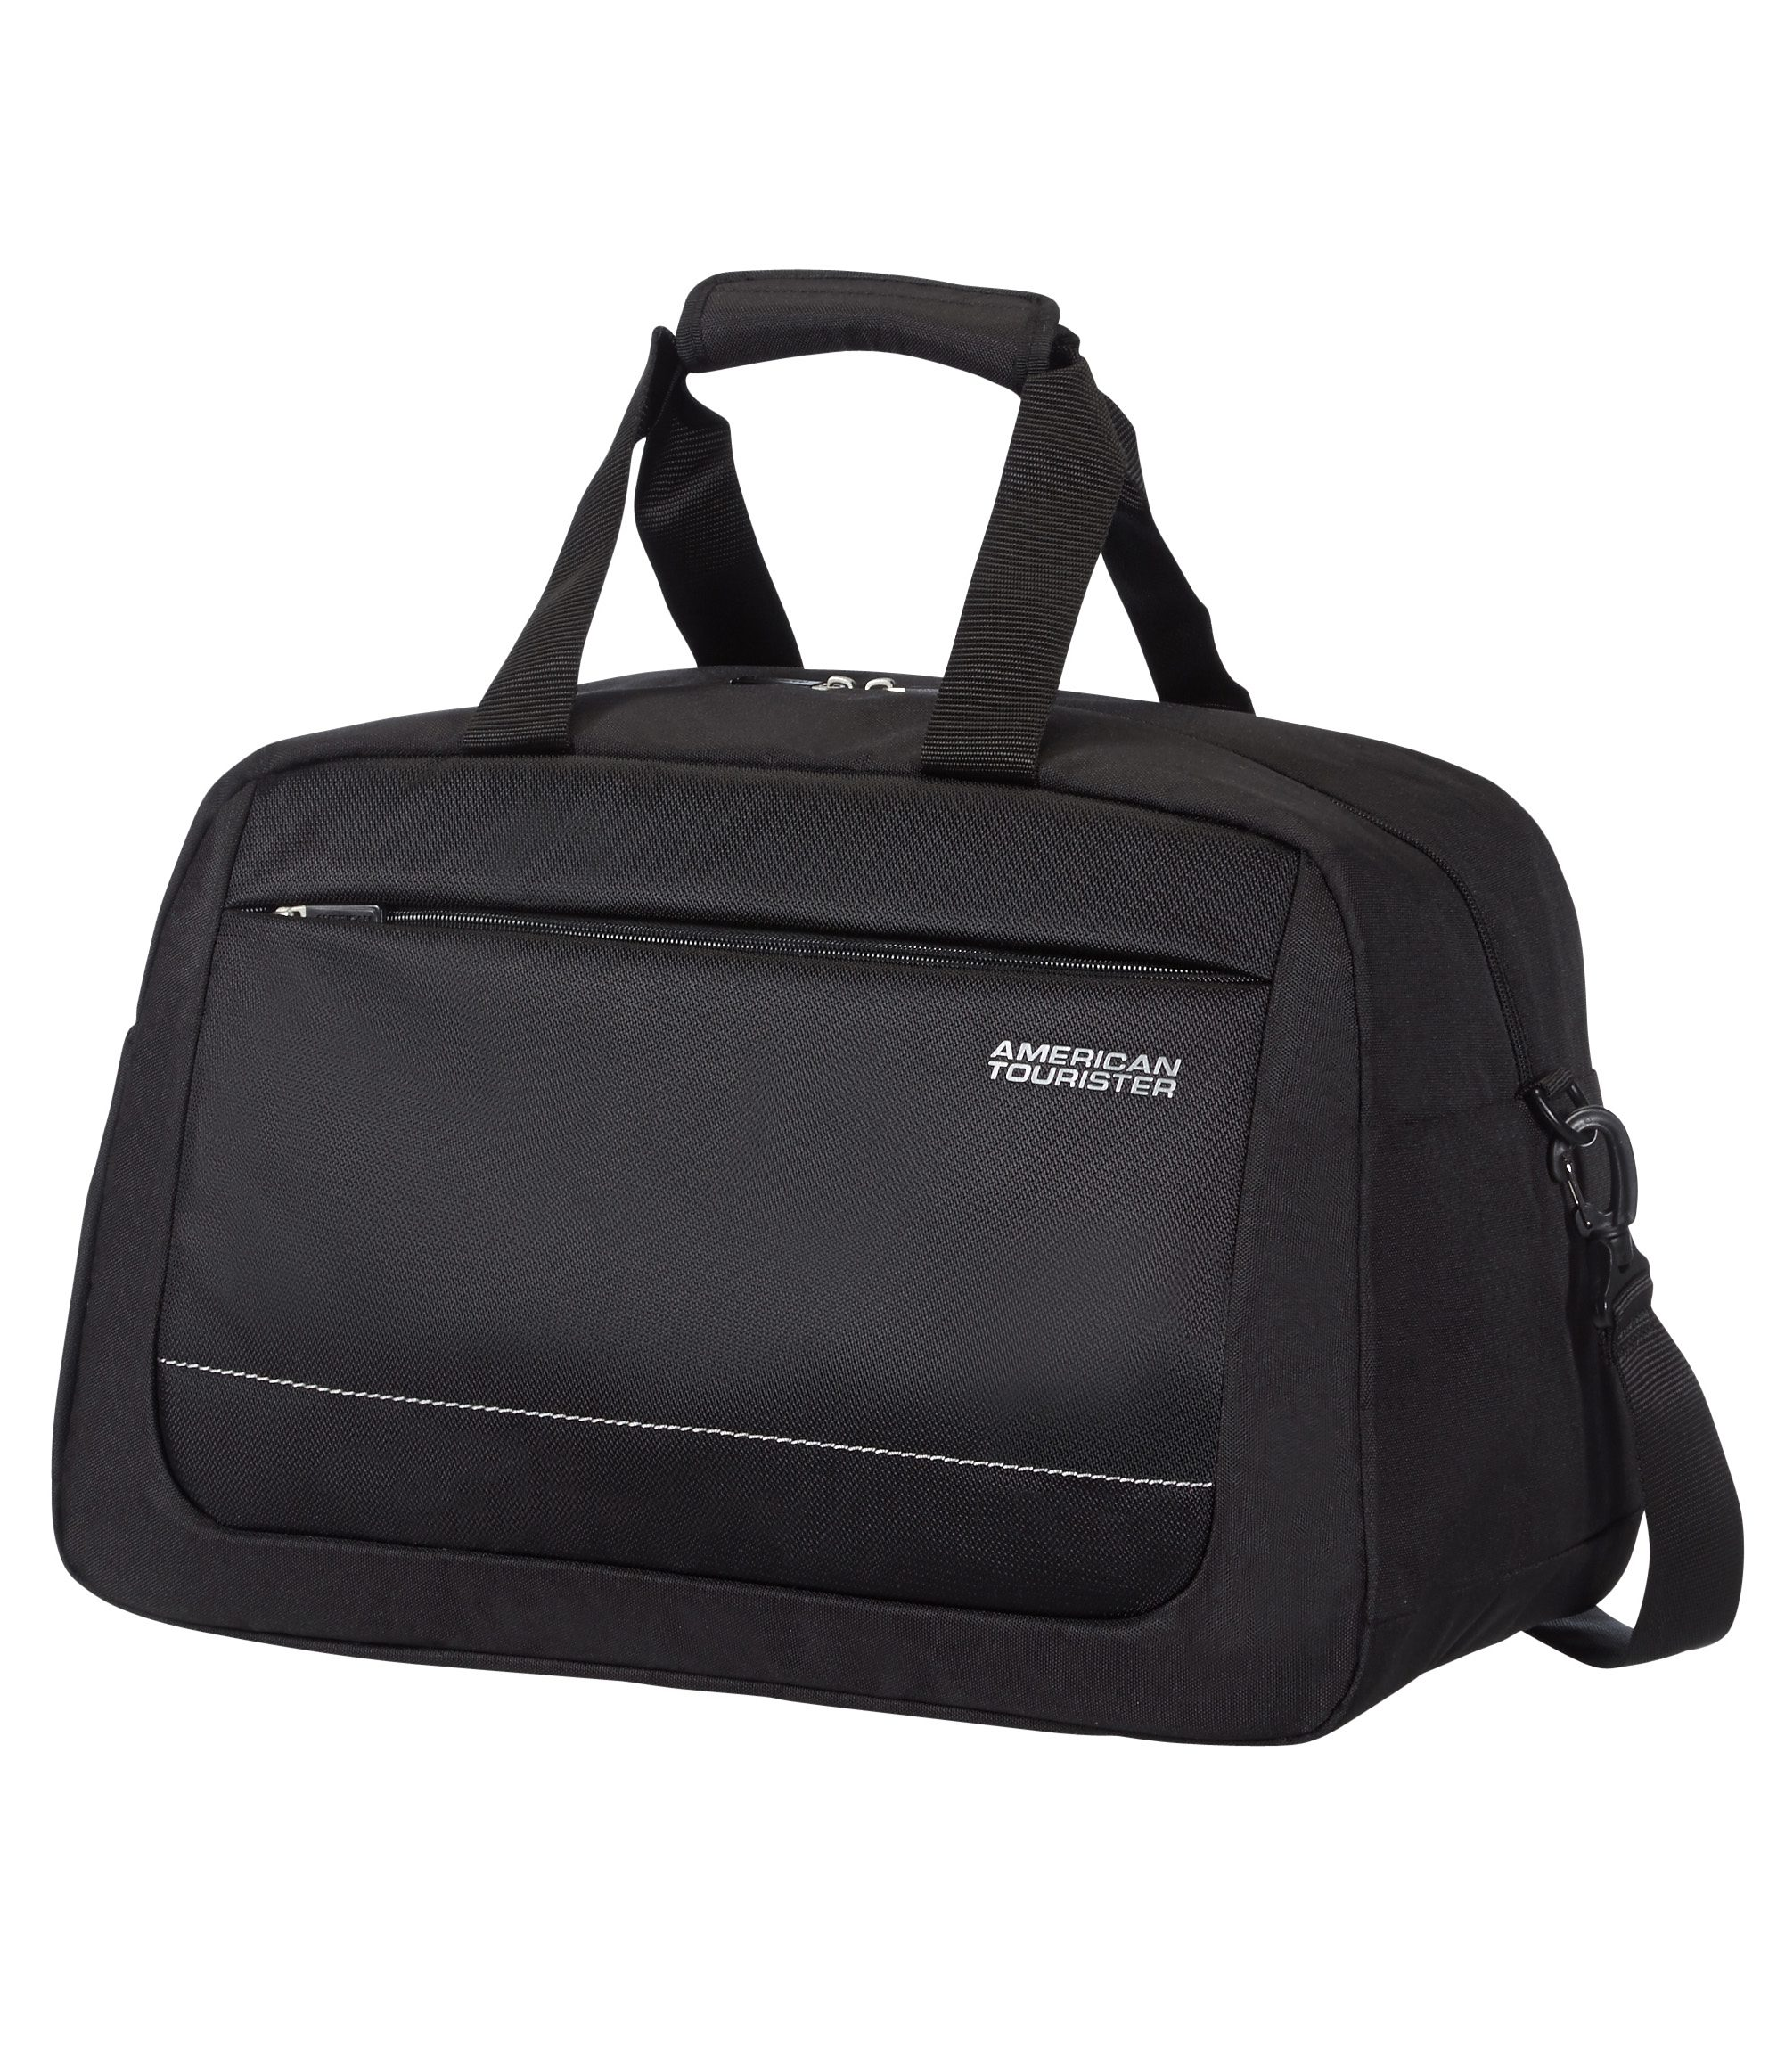 American Tourister Reisetasche, »SPRING HILL DUFFLE«